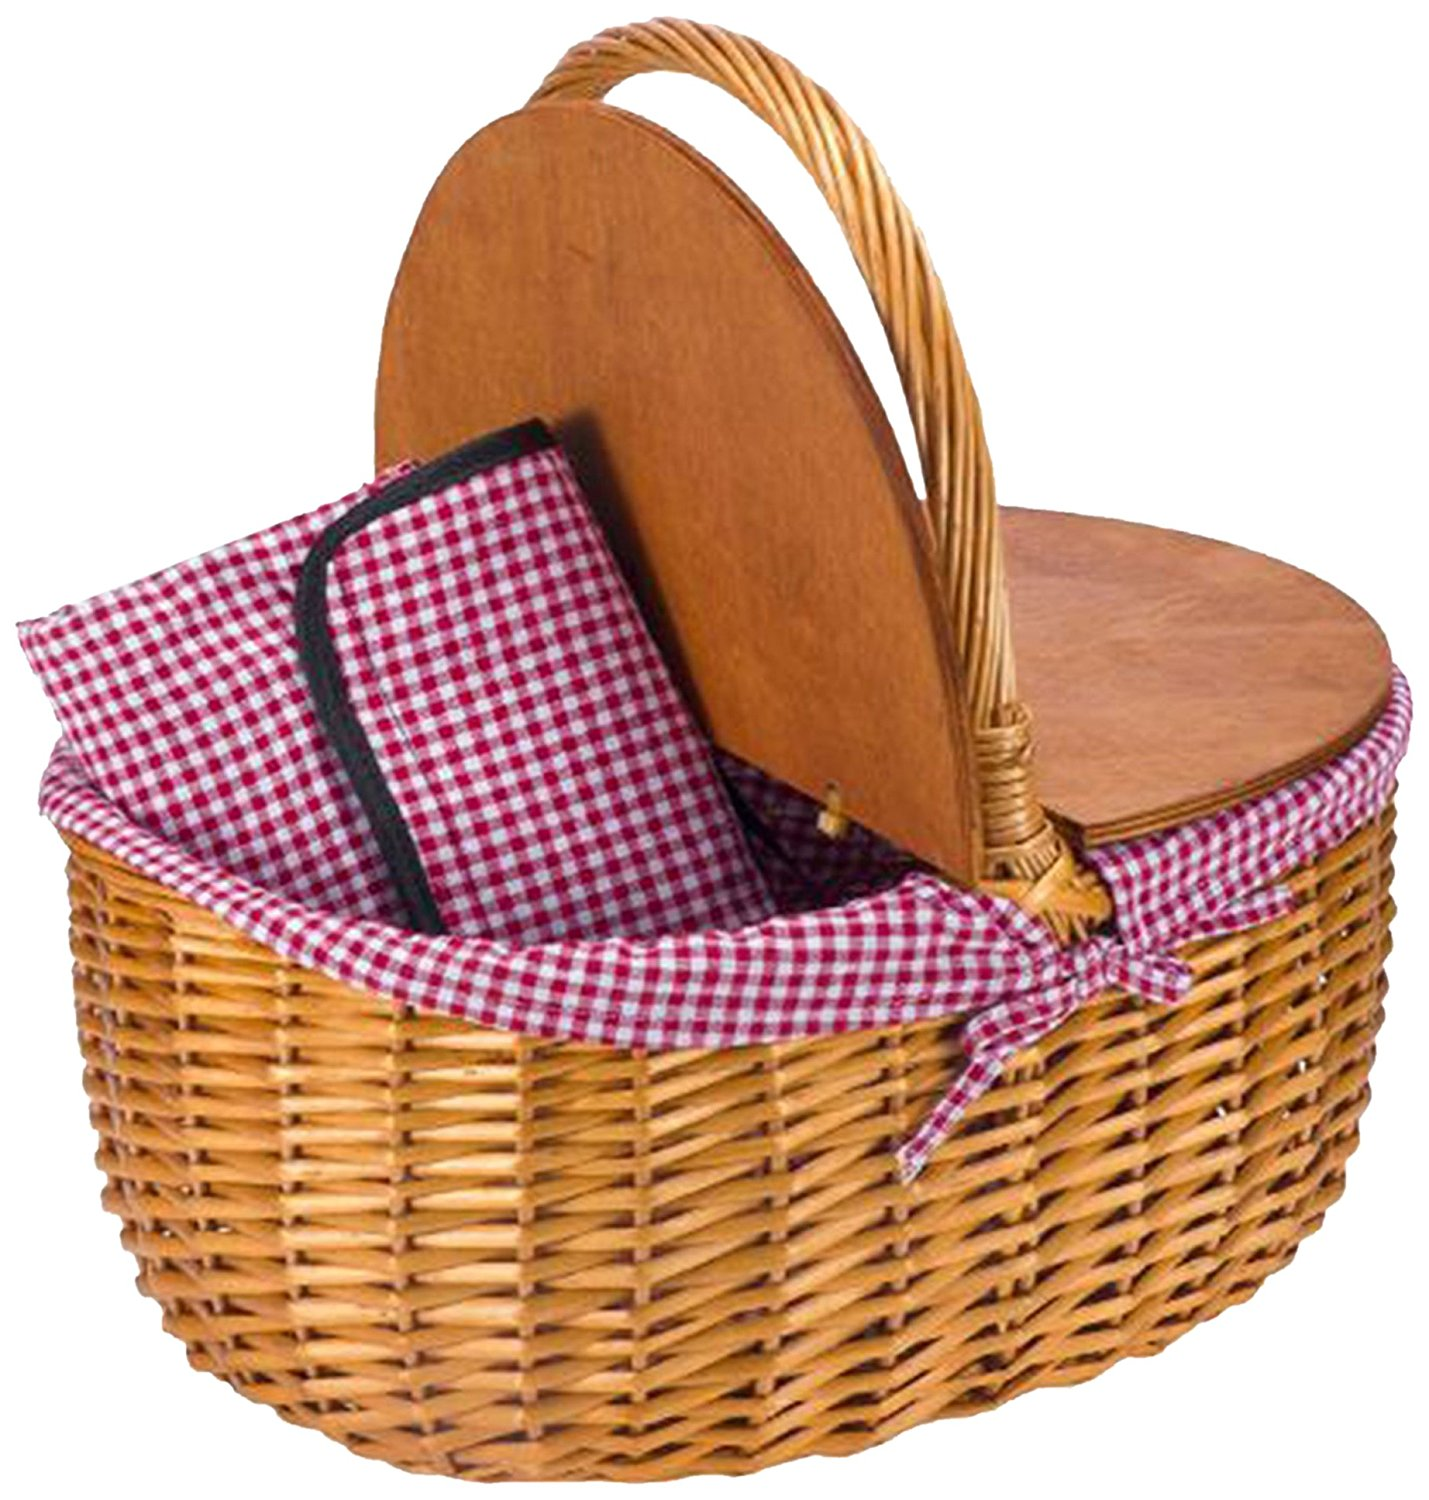 Picnic Basket | Double Wood Top Design | Red and White Gingham Pattern Lining | Includes FREE Oversize 57 Inch x 57 Inch Matching Gingham Patterned Picnic BLANKET Waterproof Backing Willow Basket